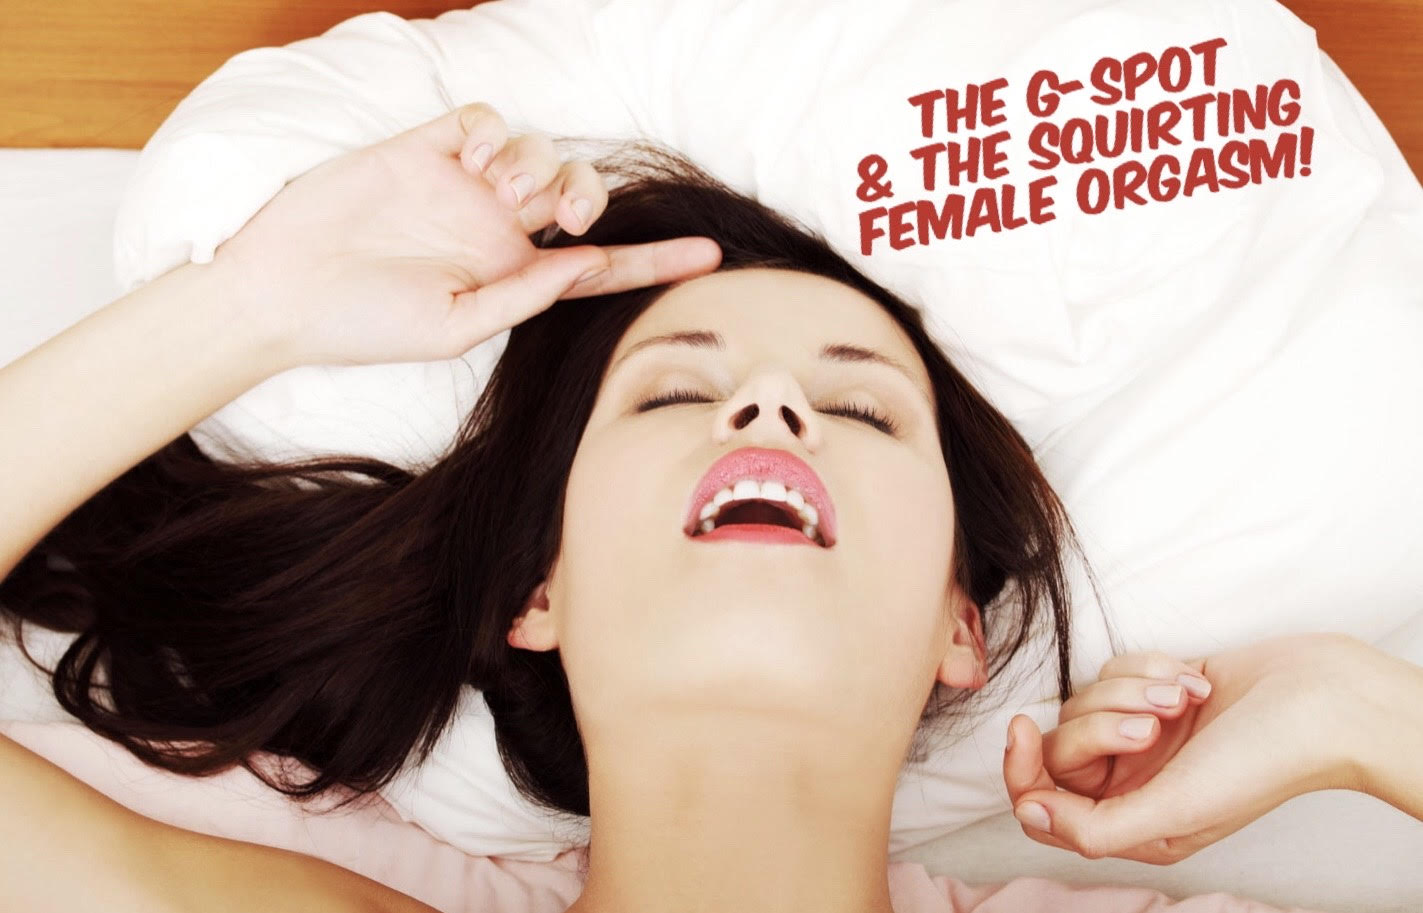 The G-Spot & The Squirting Female Orgasm4